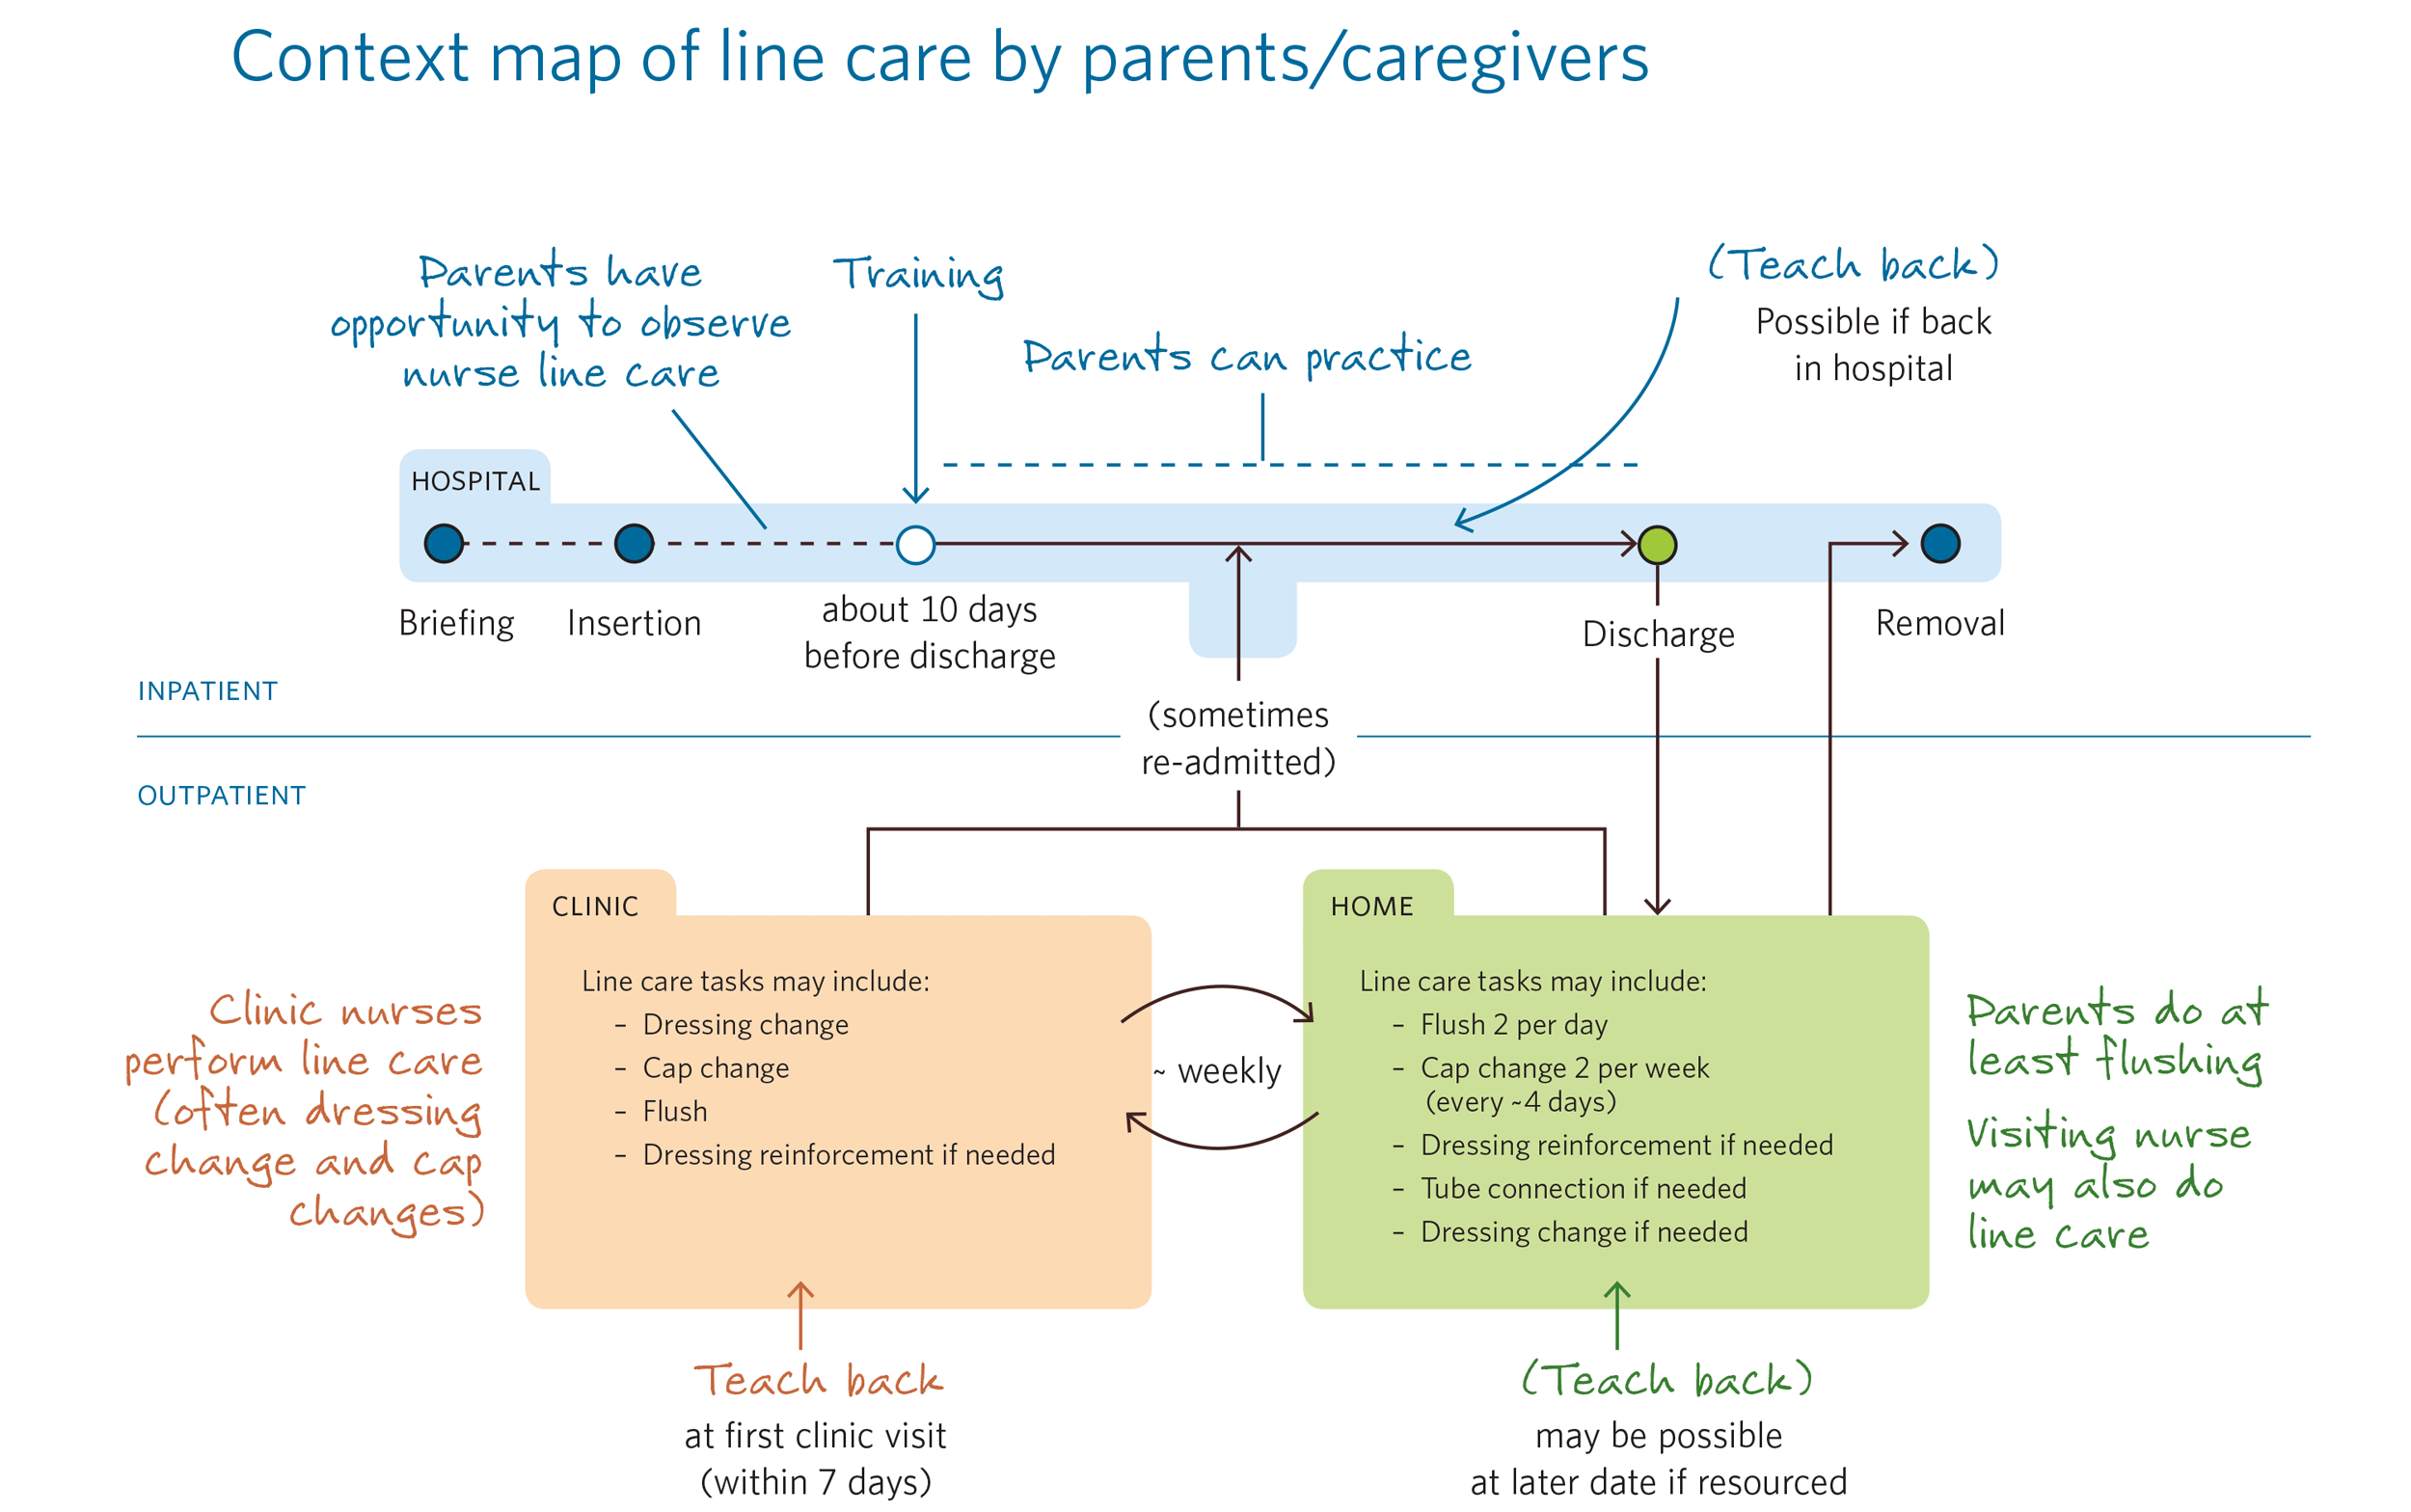 Process map of pediatric central line care between hospital, clinic, and home.